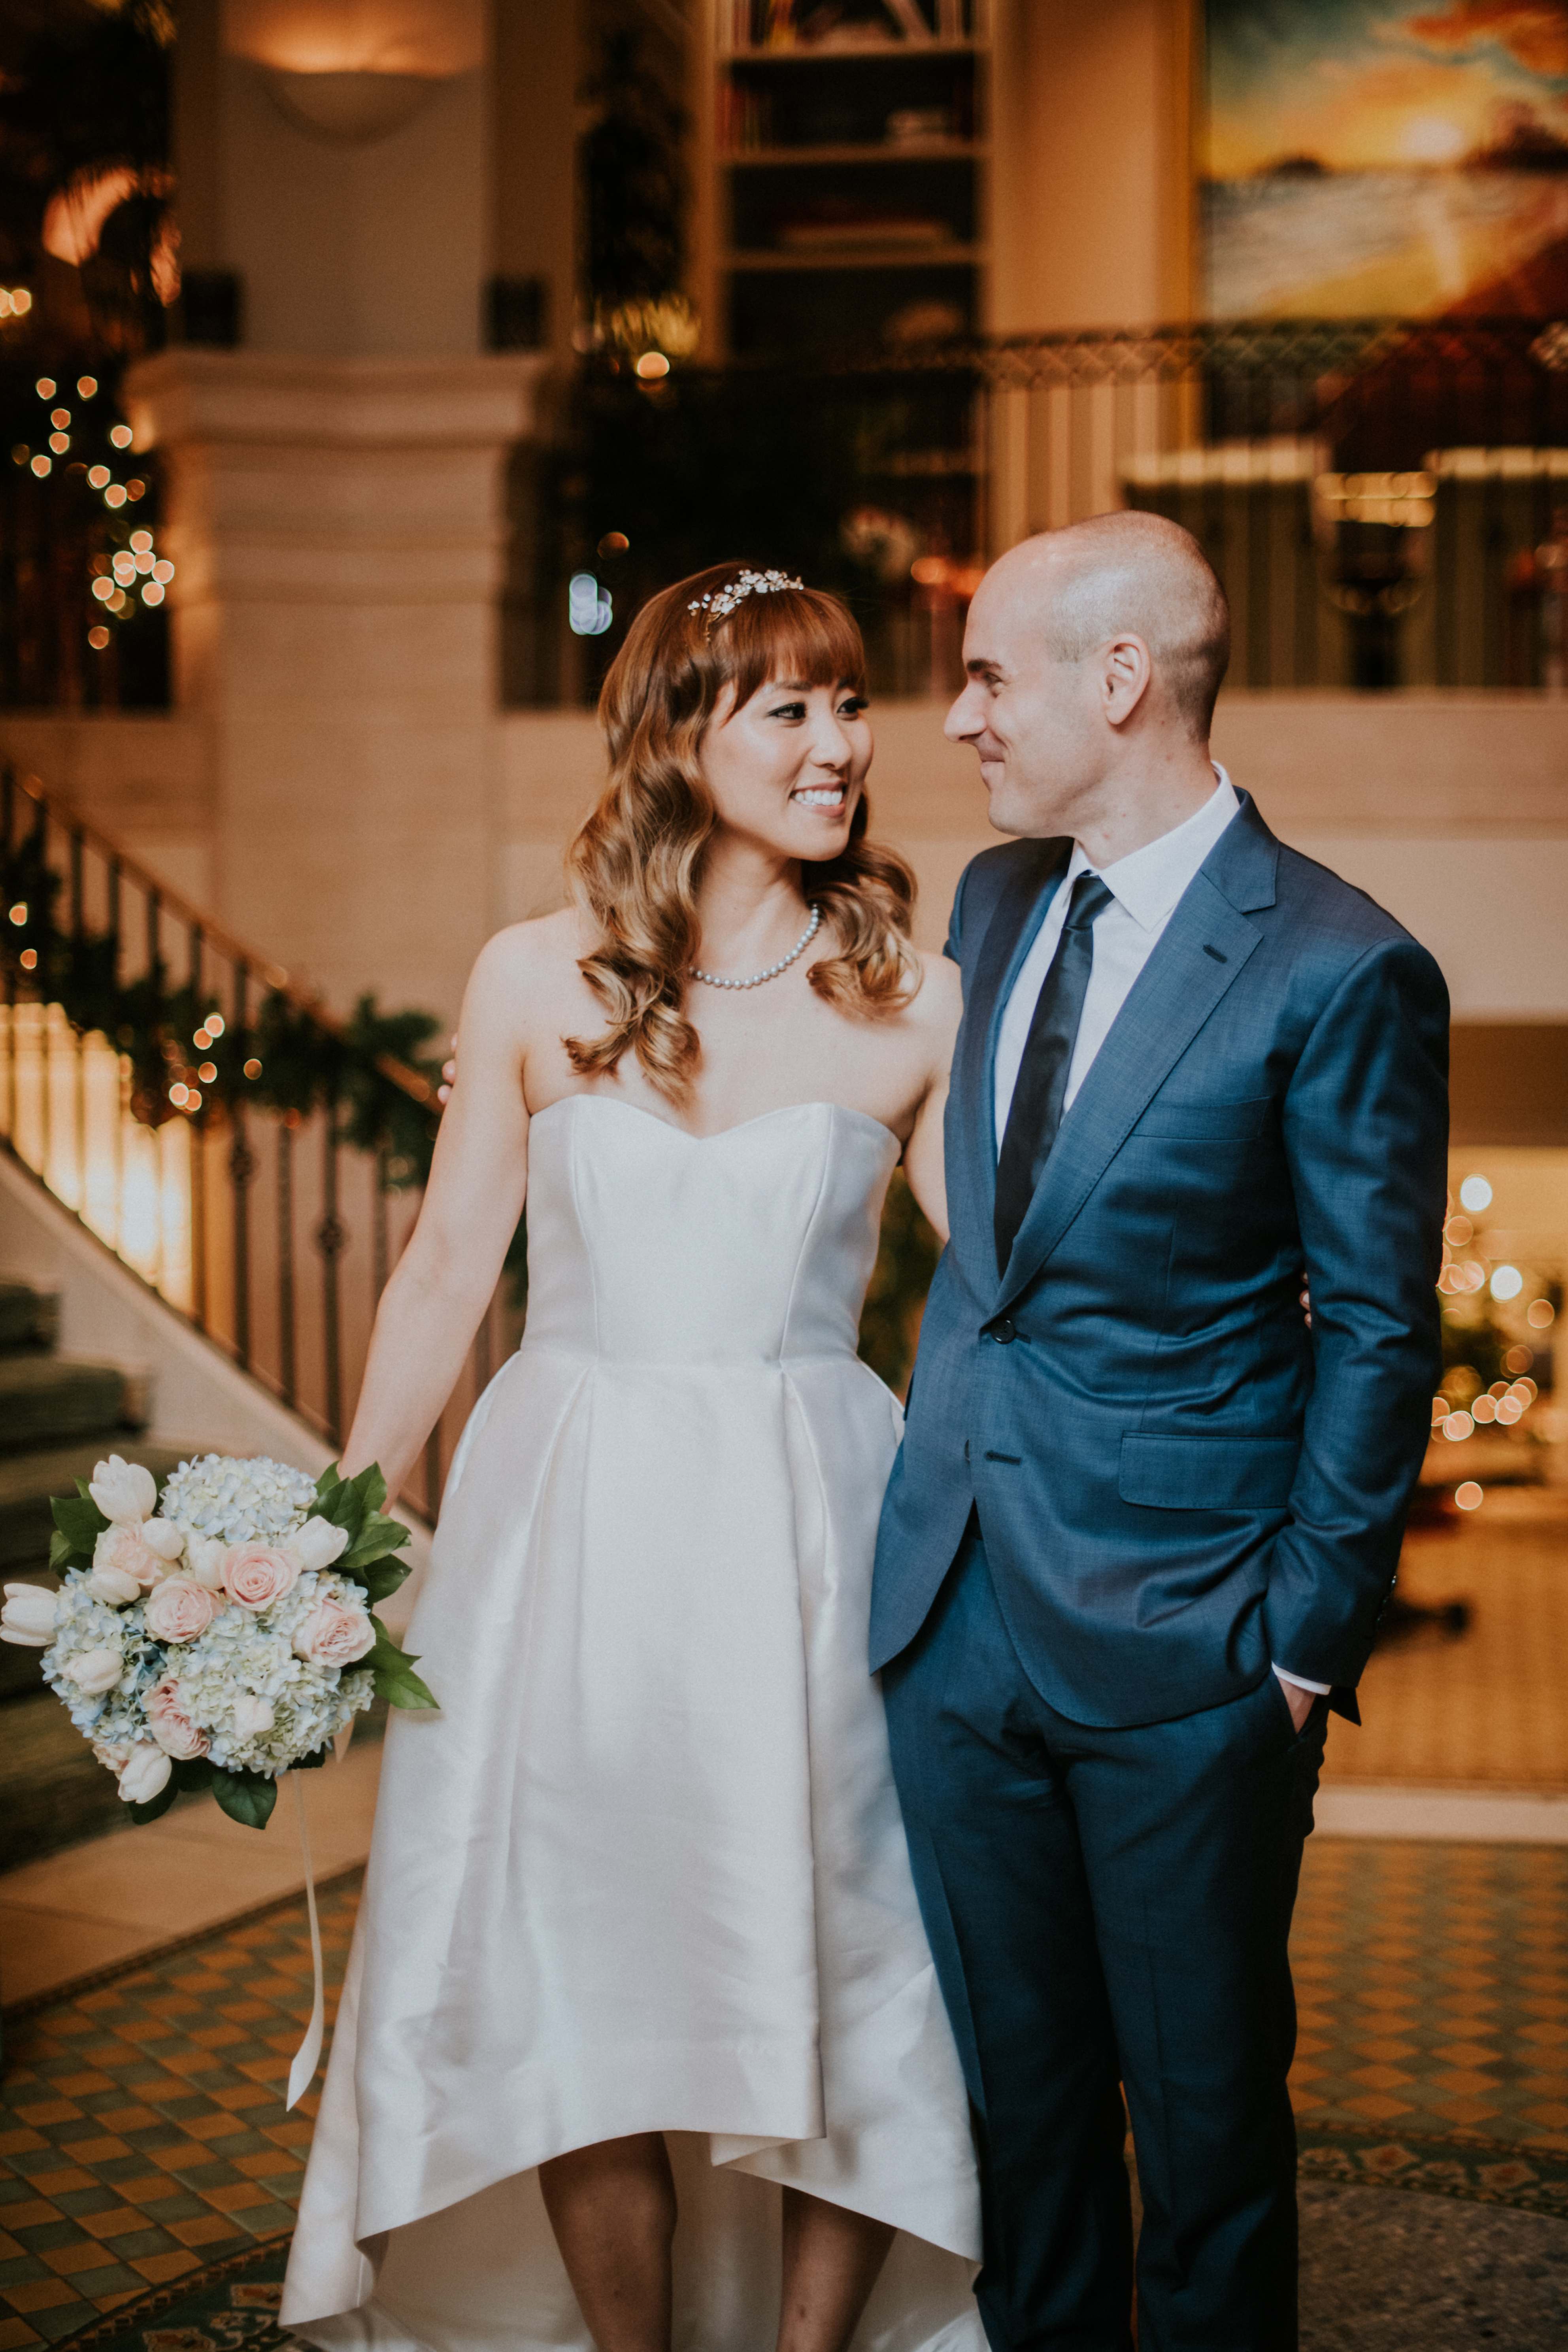 bride and groom posed at hotel lobby wedding day photography california wedding hotel casa del mar